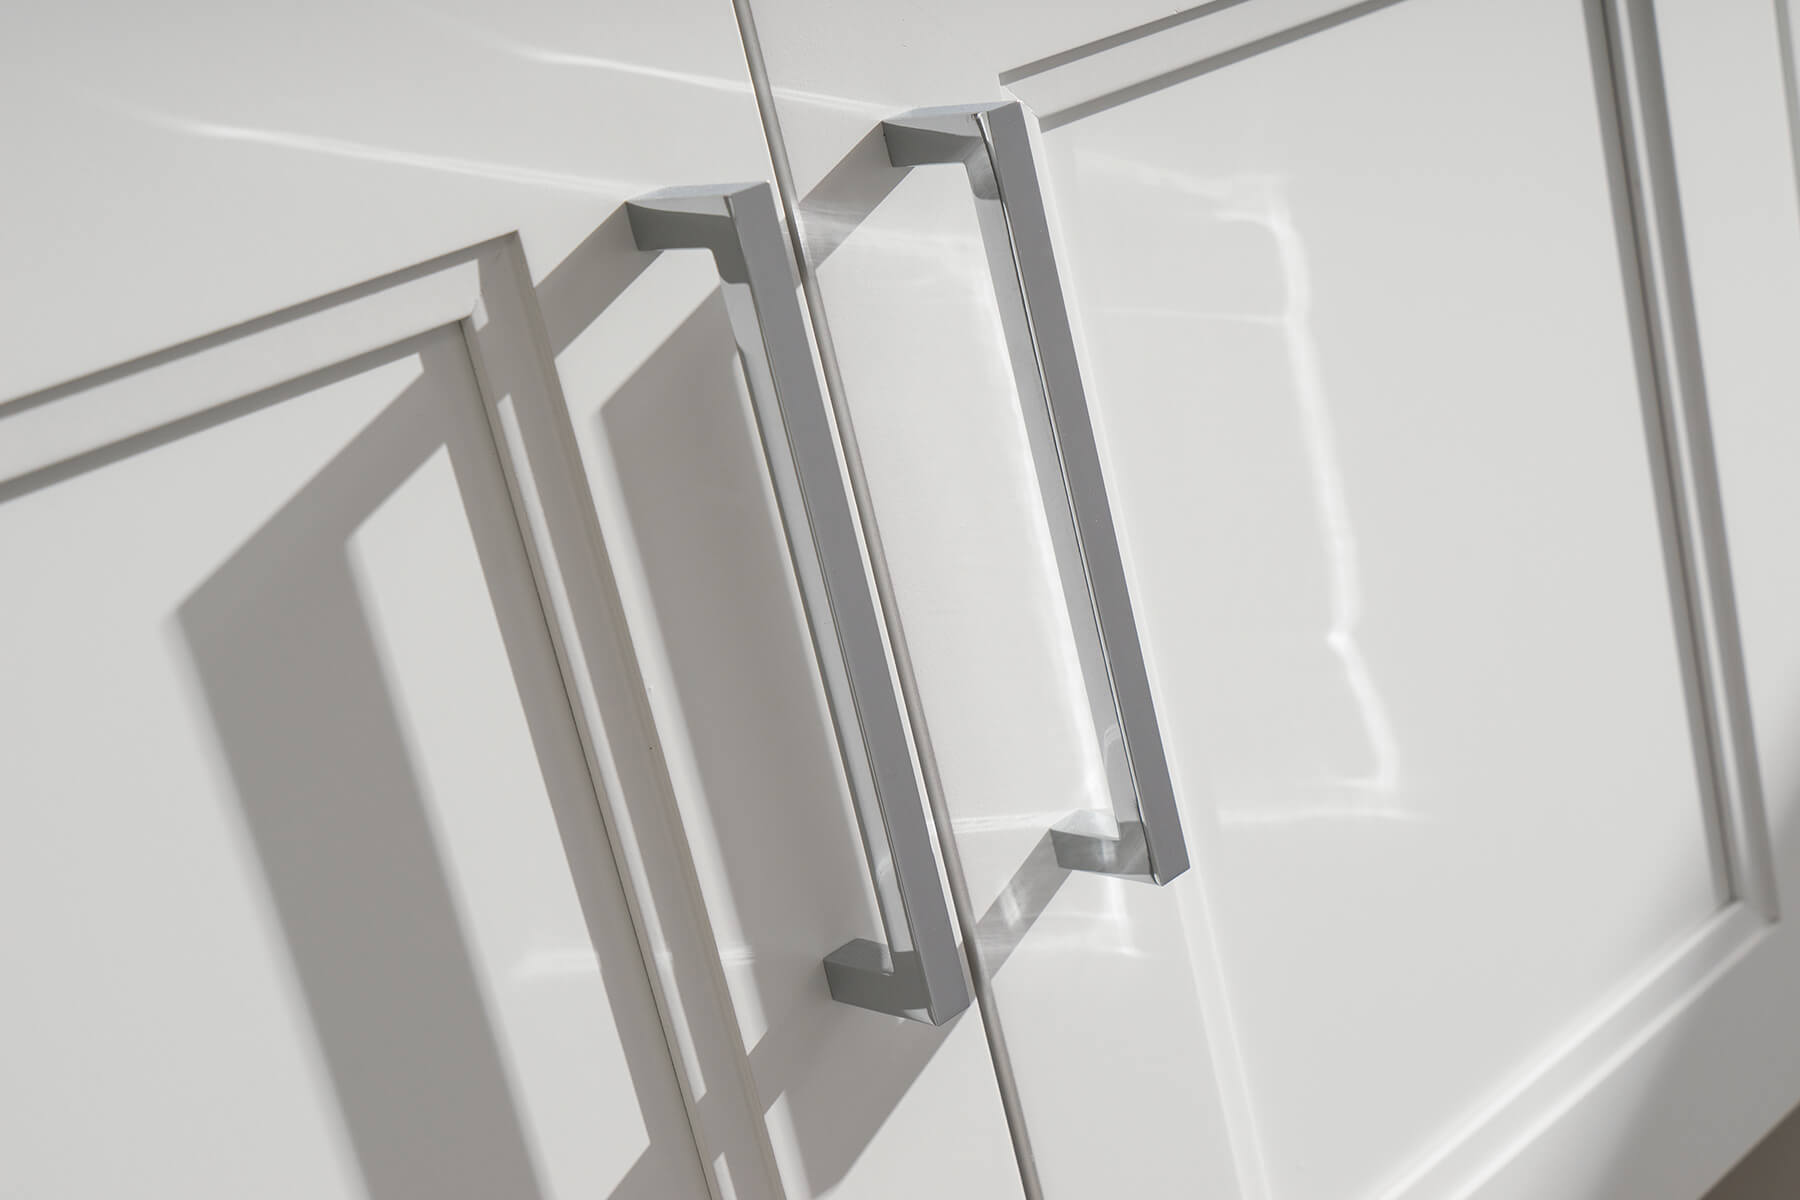 A close up of cabinet doors. Cabinet Storage ideas behind cabinet doors.